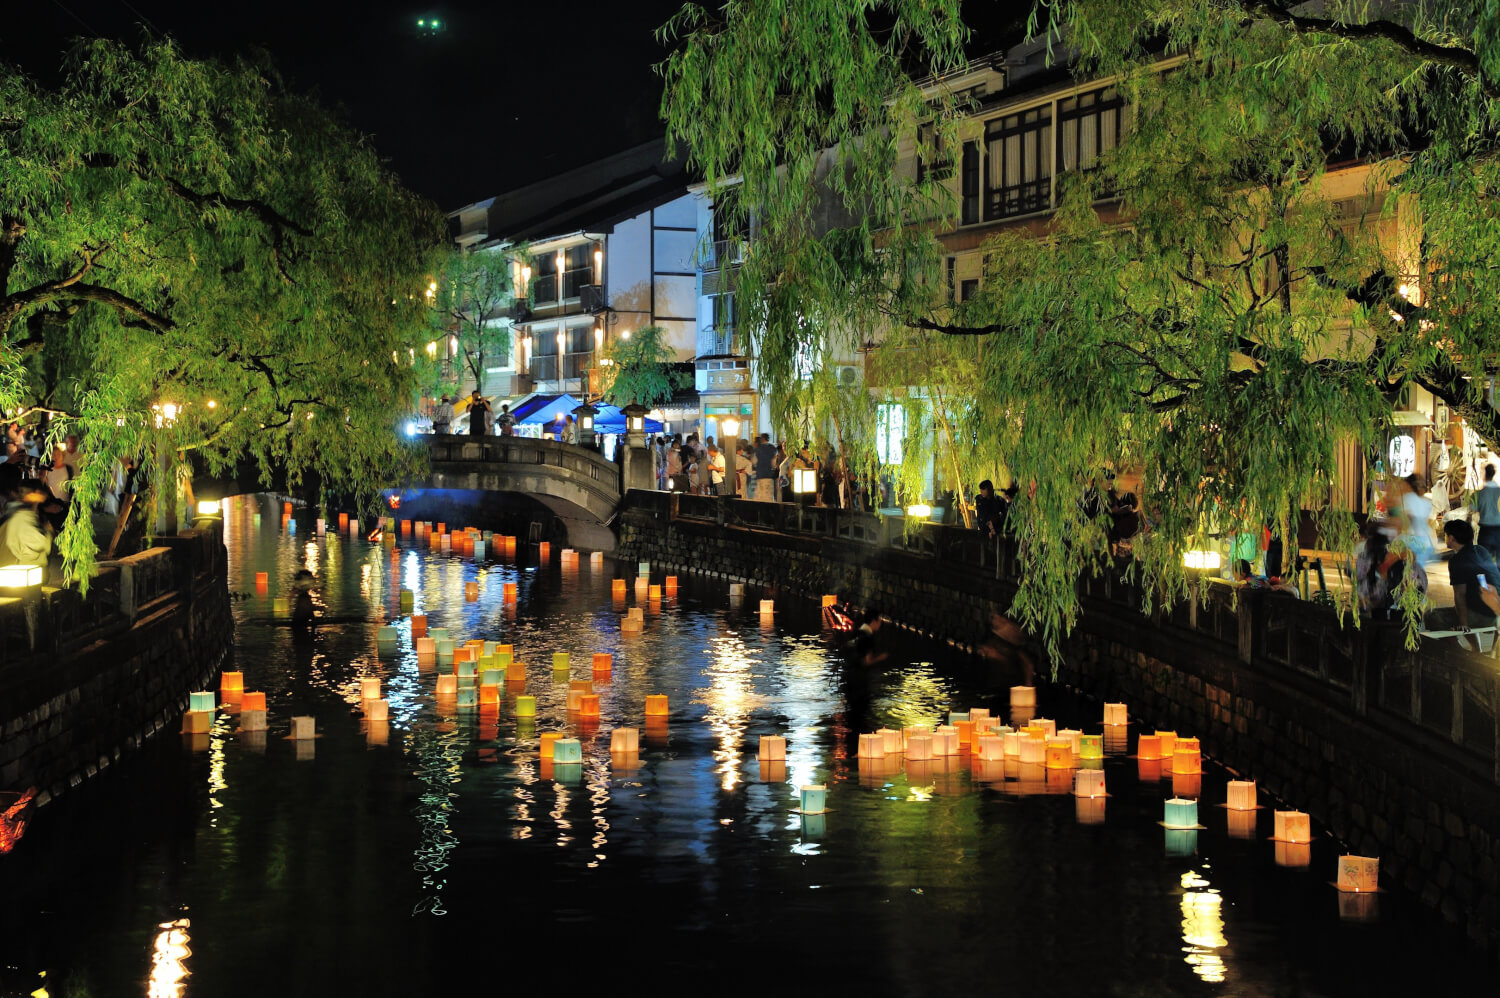 Summer Festivals in Kinosaki Onsen 2019